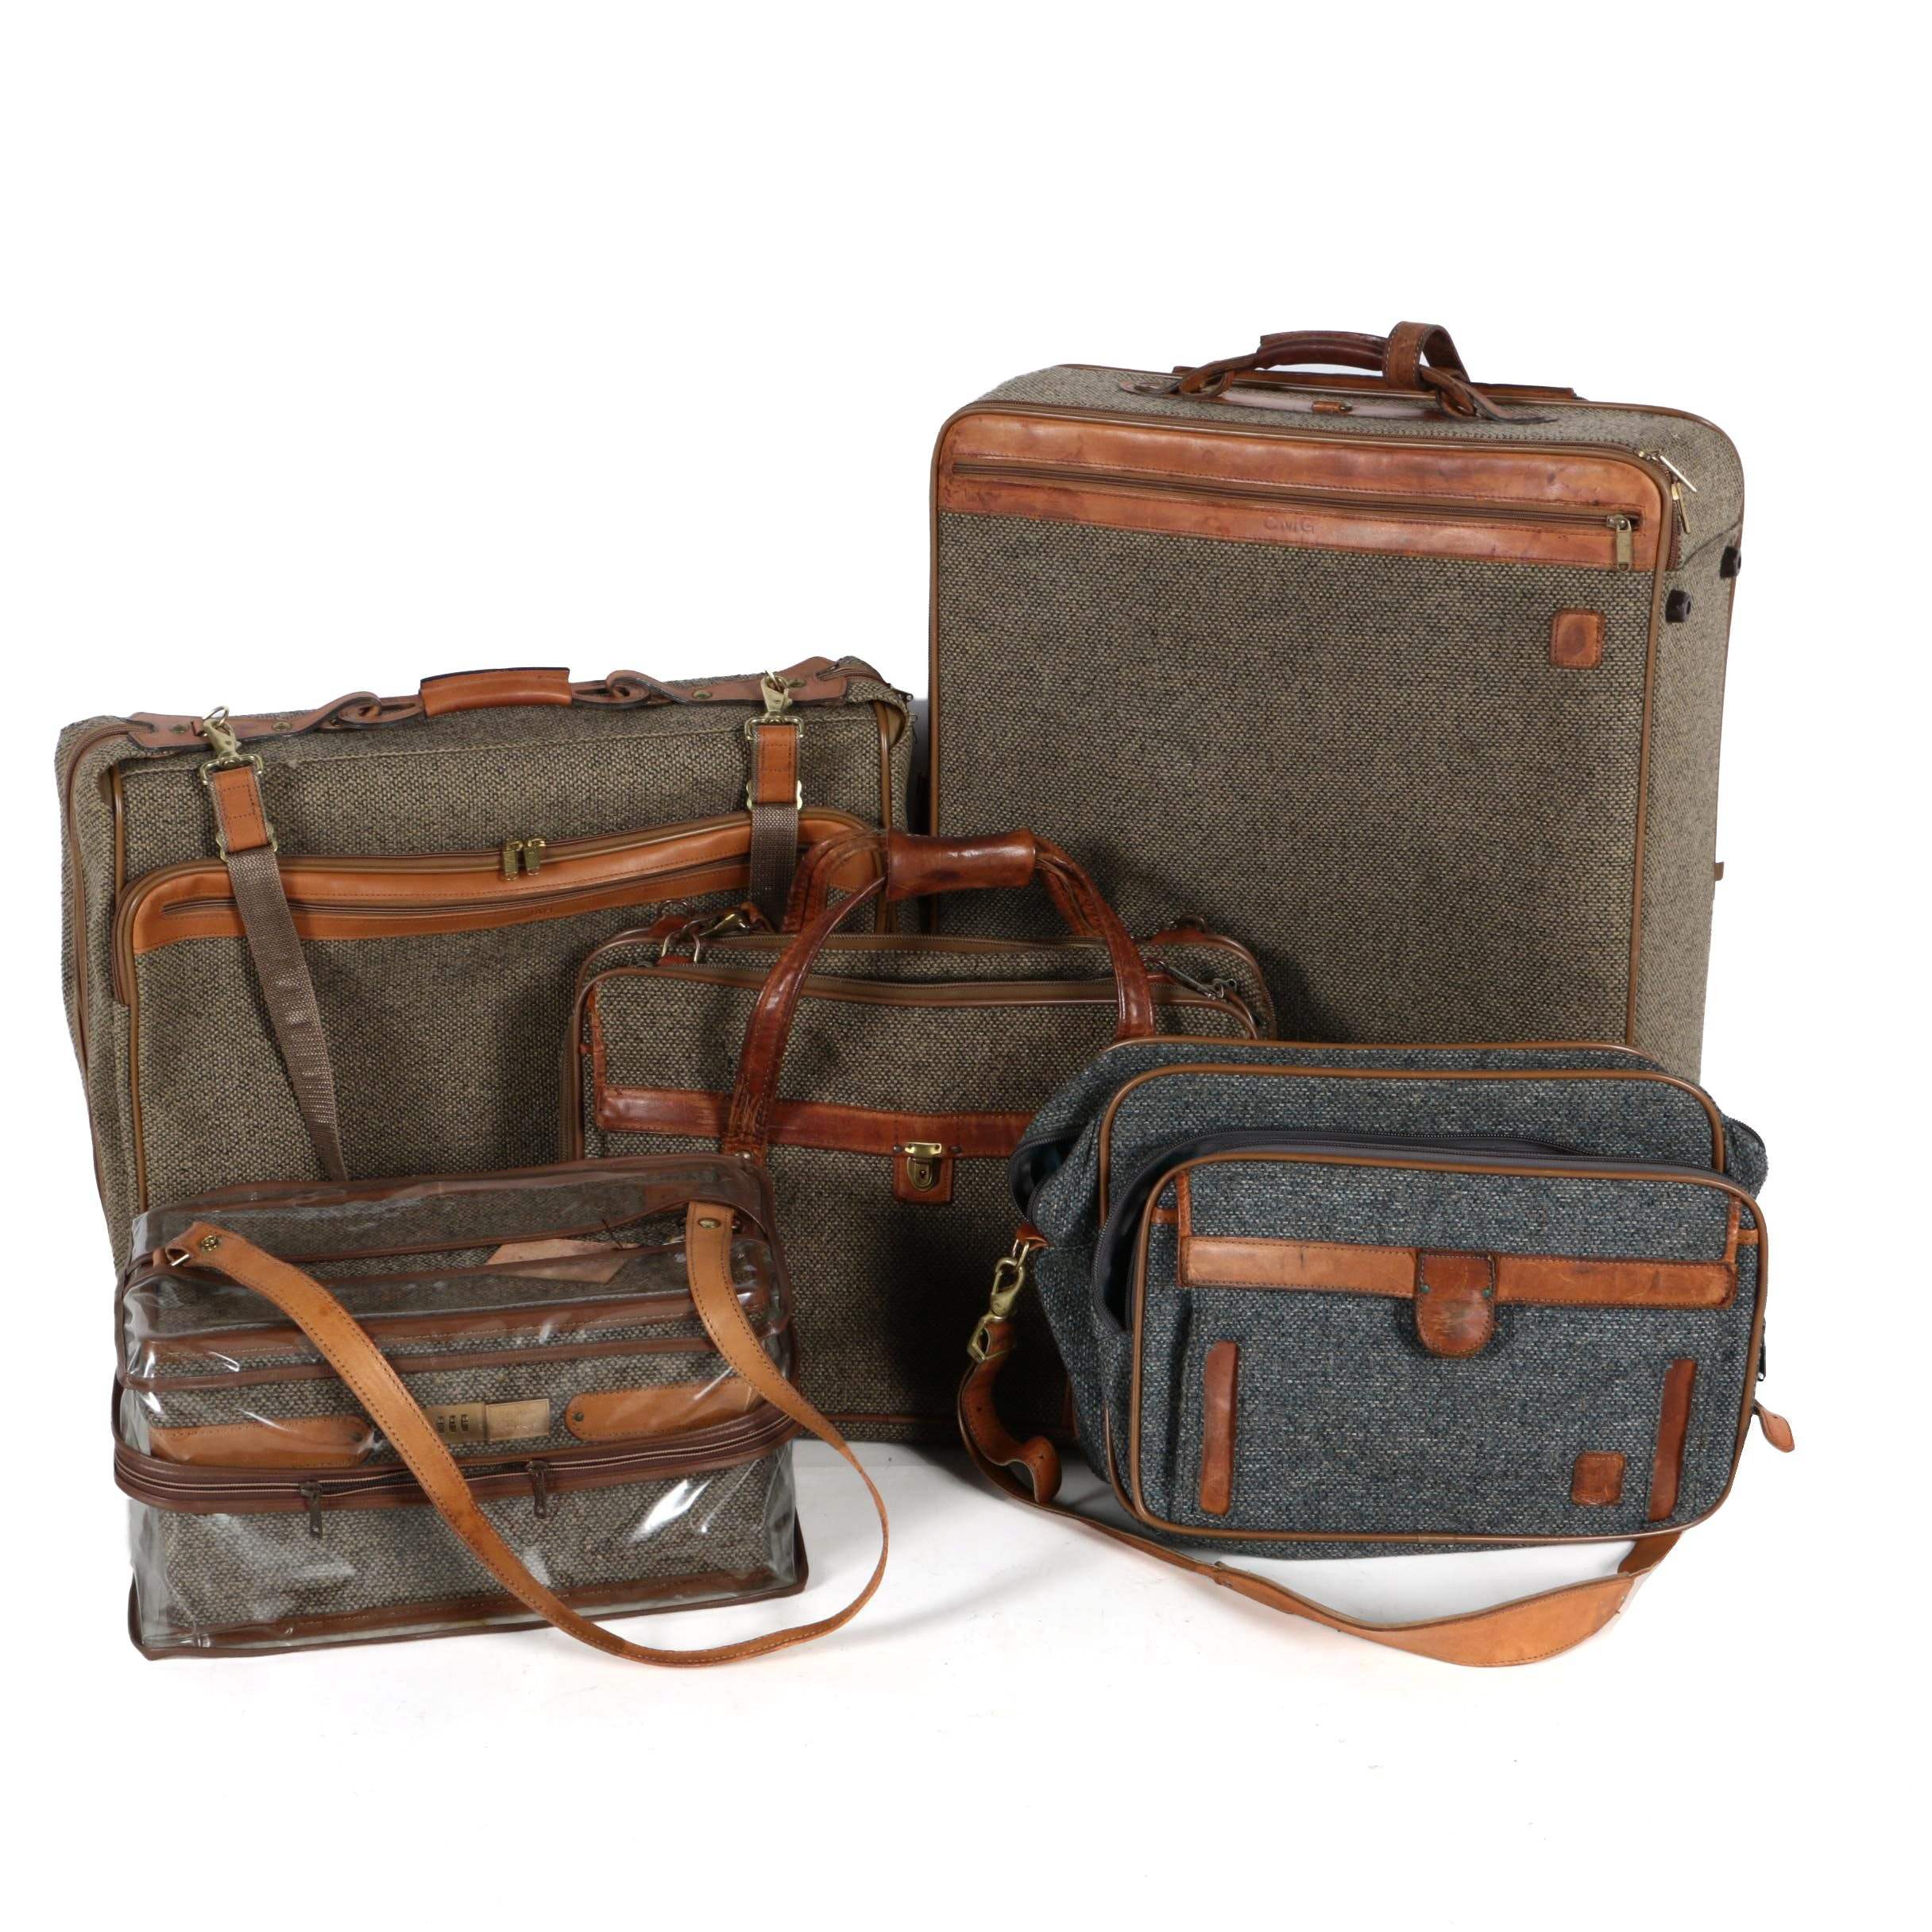 Hartmann Vintage Tweed and Leather-Trimmed Luggage